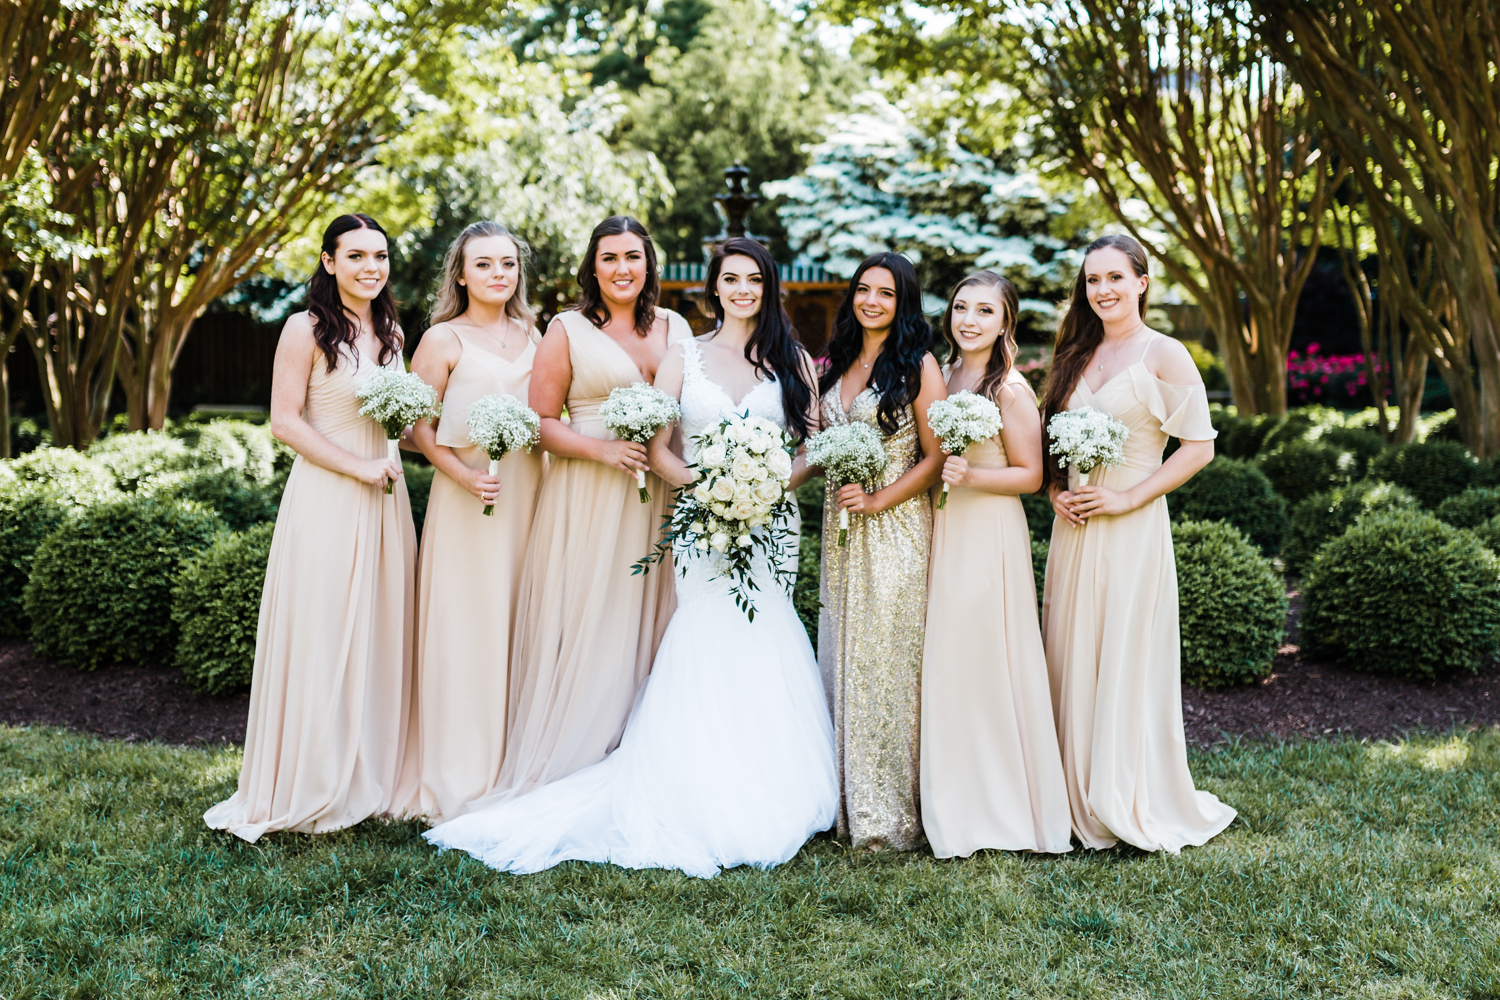 beige and sequin bridesmaids dresses in annapolis, md